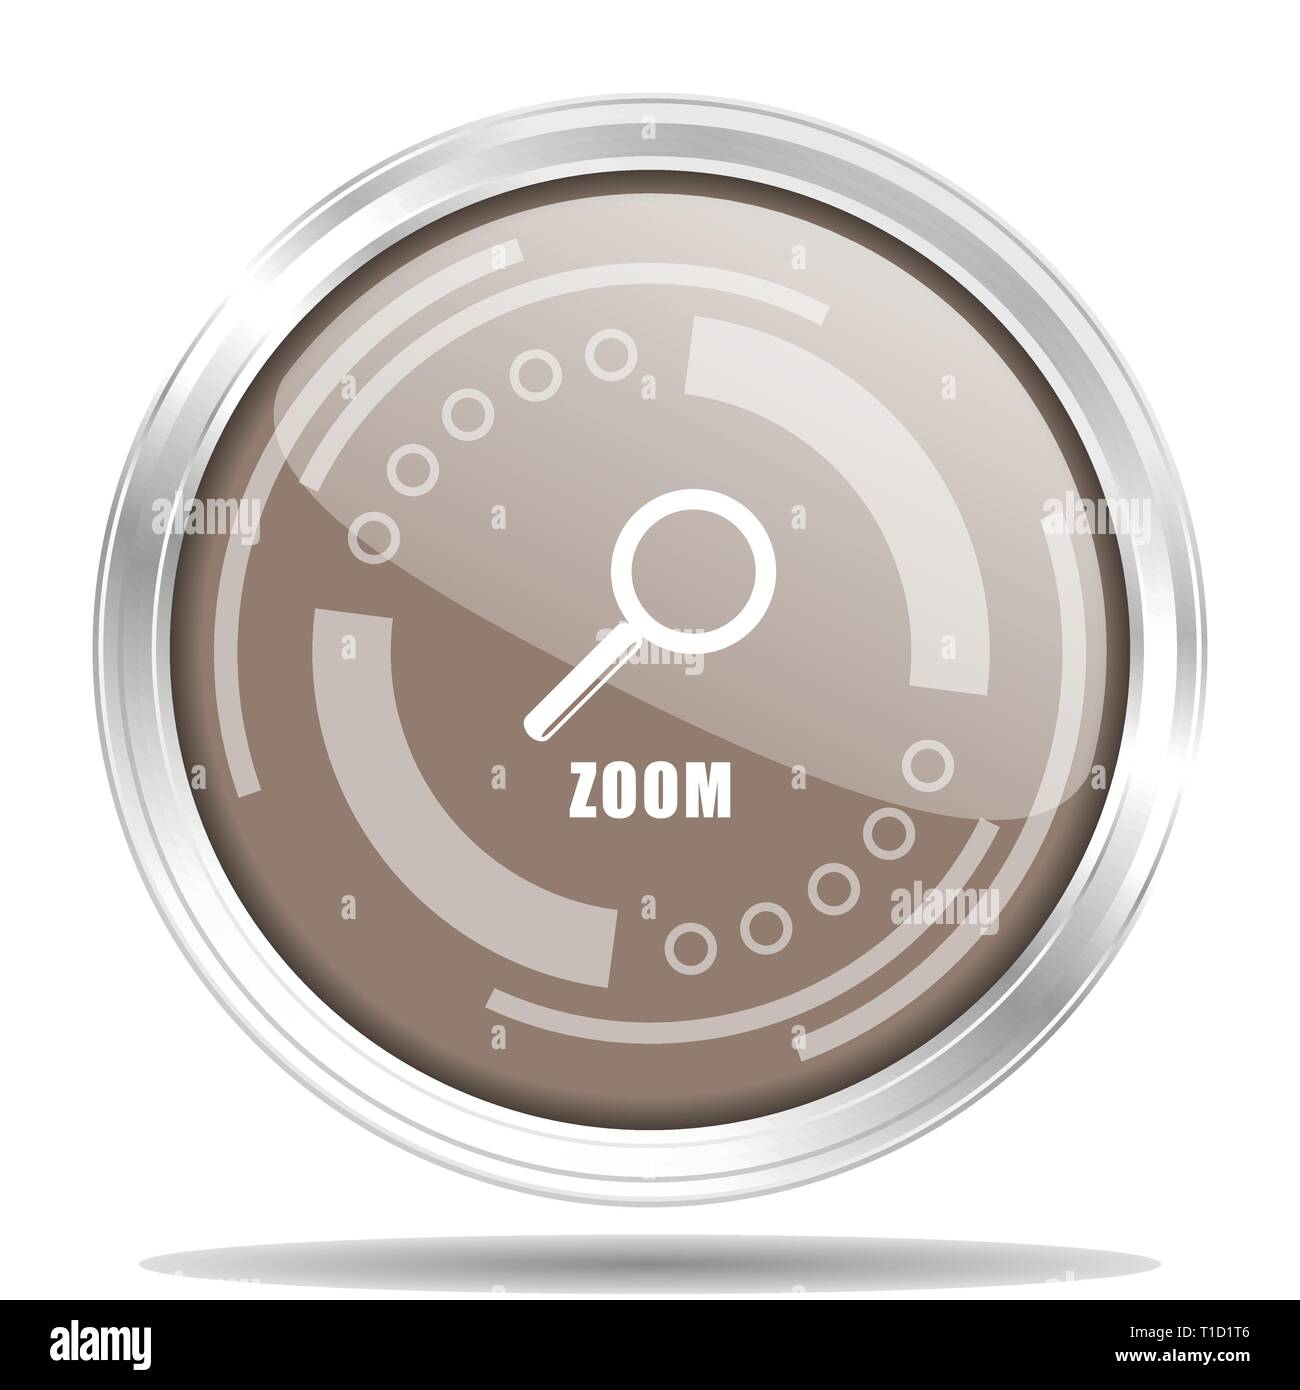 Zoom silver metallic chrome border round web icon, vector illustration for webdesign and mobile applications isolated on white background - Stock Image